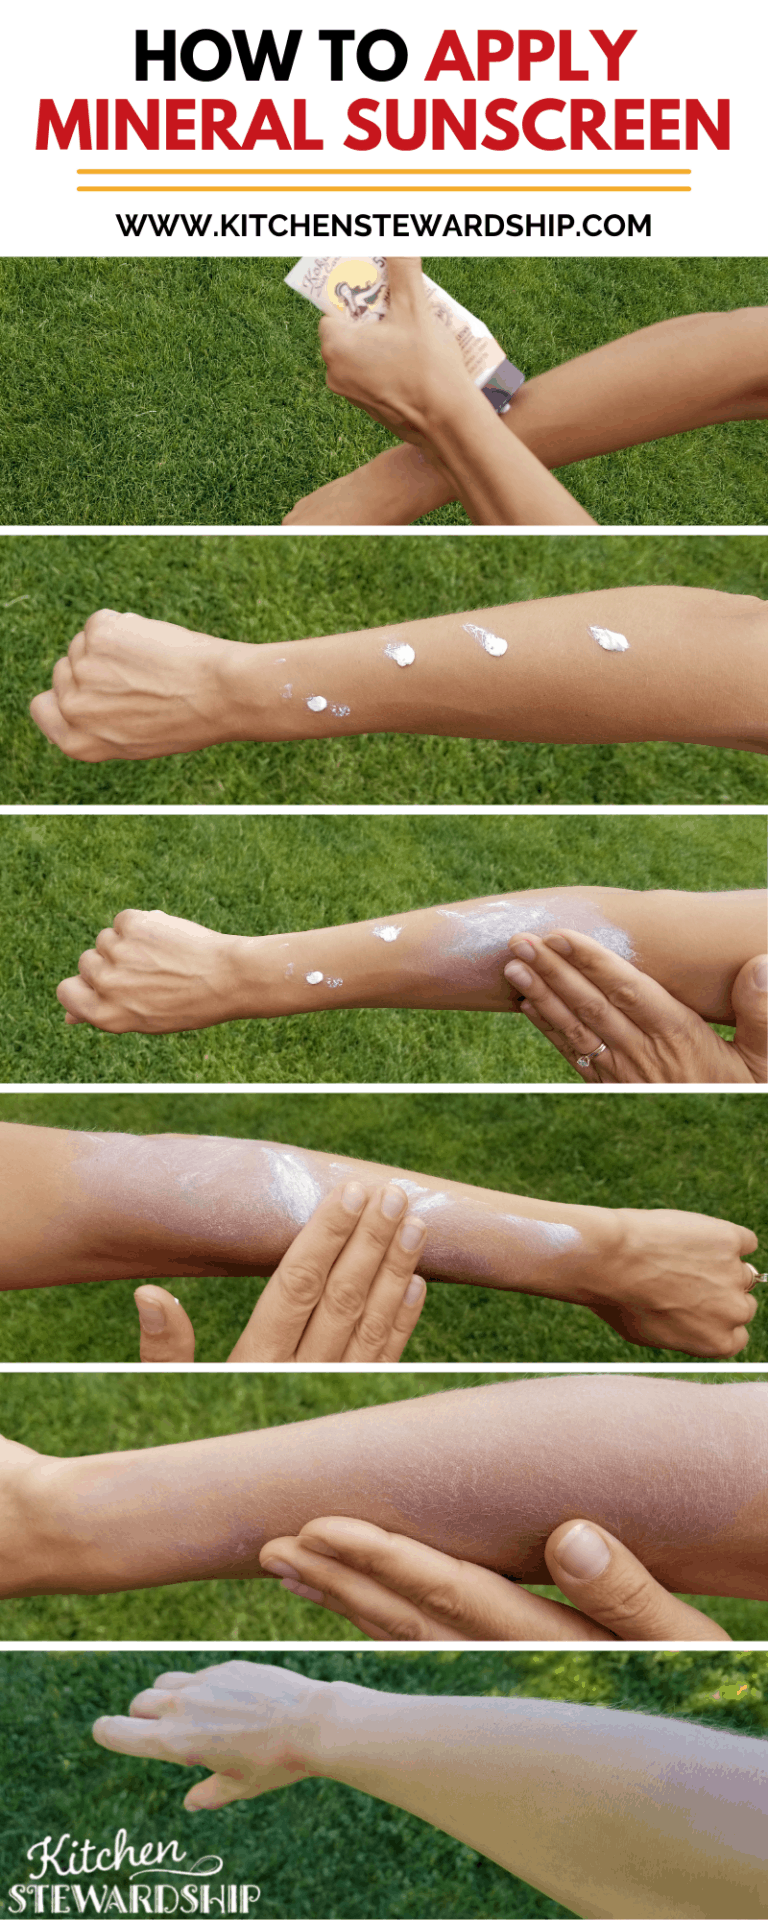 how to apply mineral sunscreen